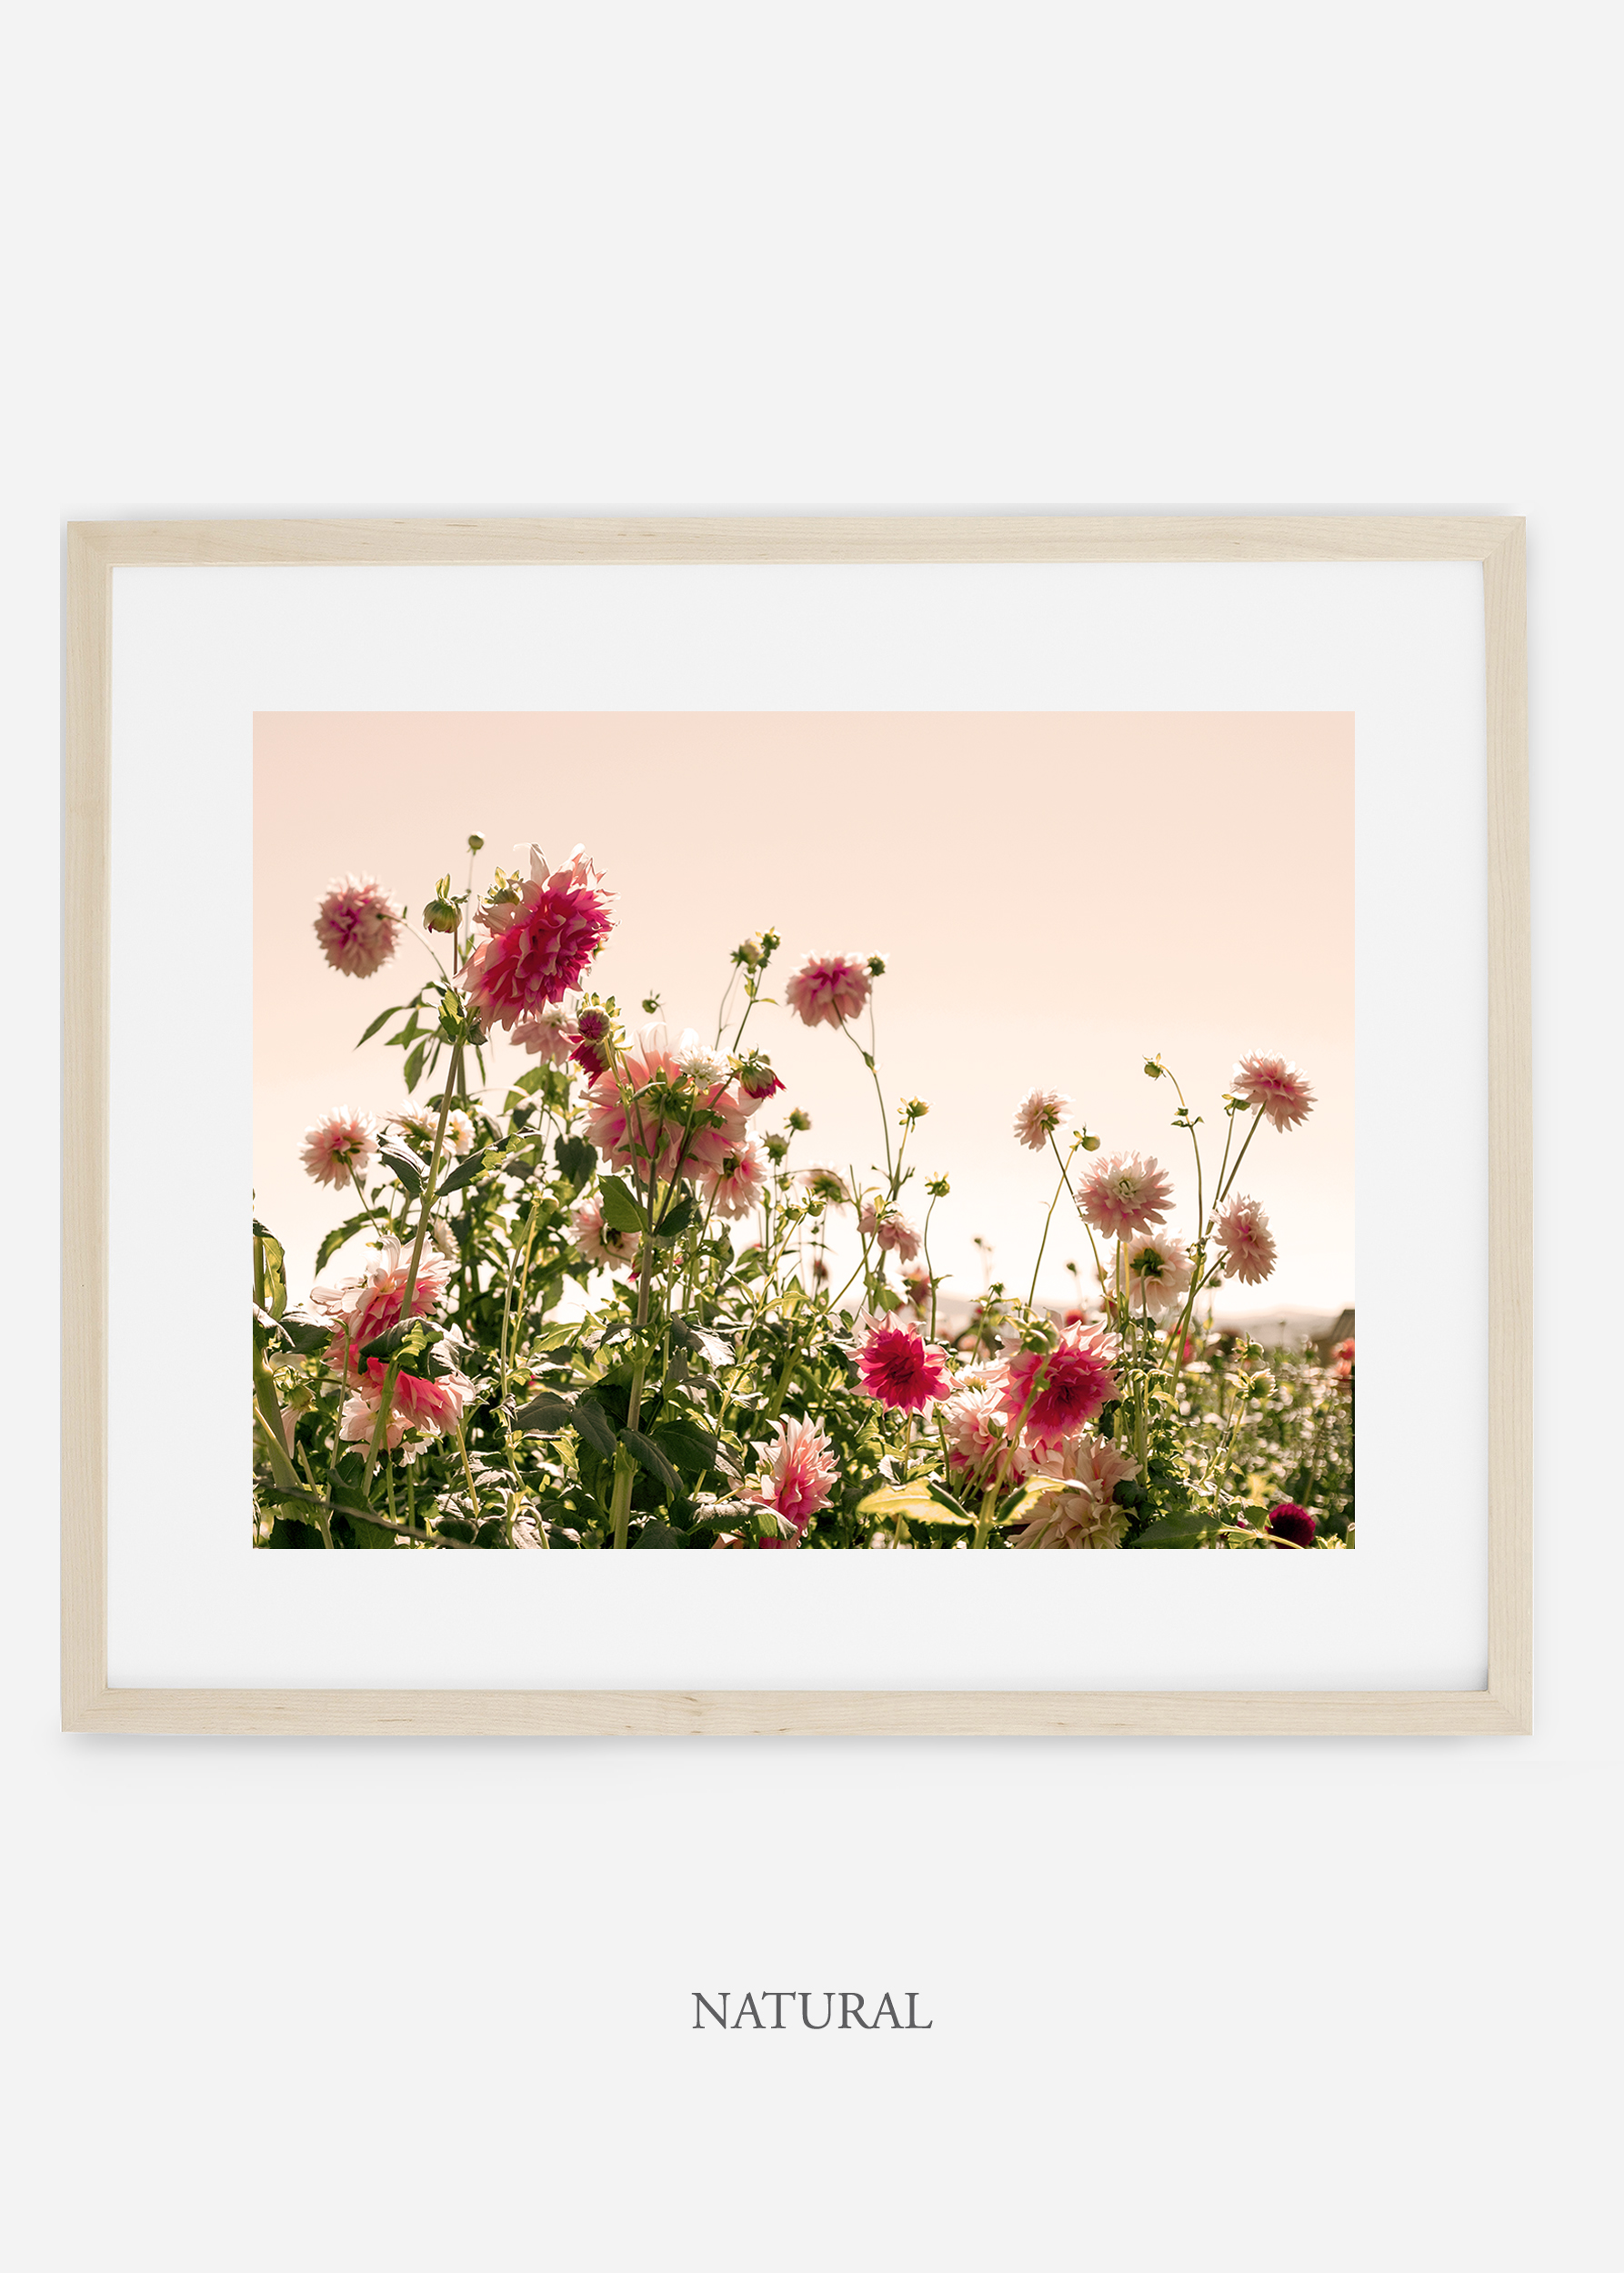 wilder-california-naturalframe-dahlia-7-minimal-botanical-print-art-interior-design.jpg